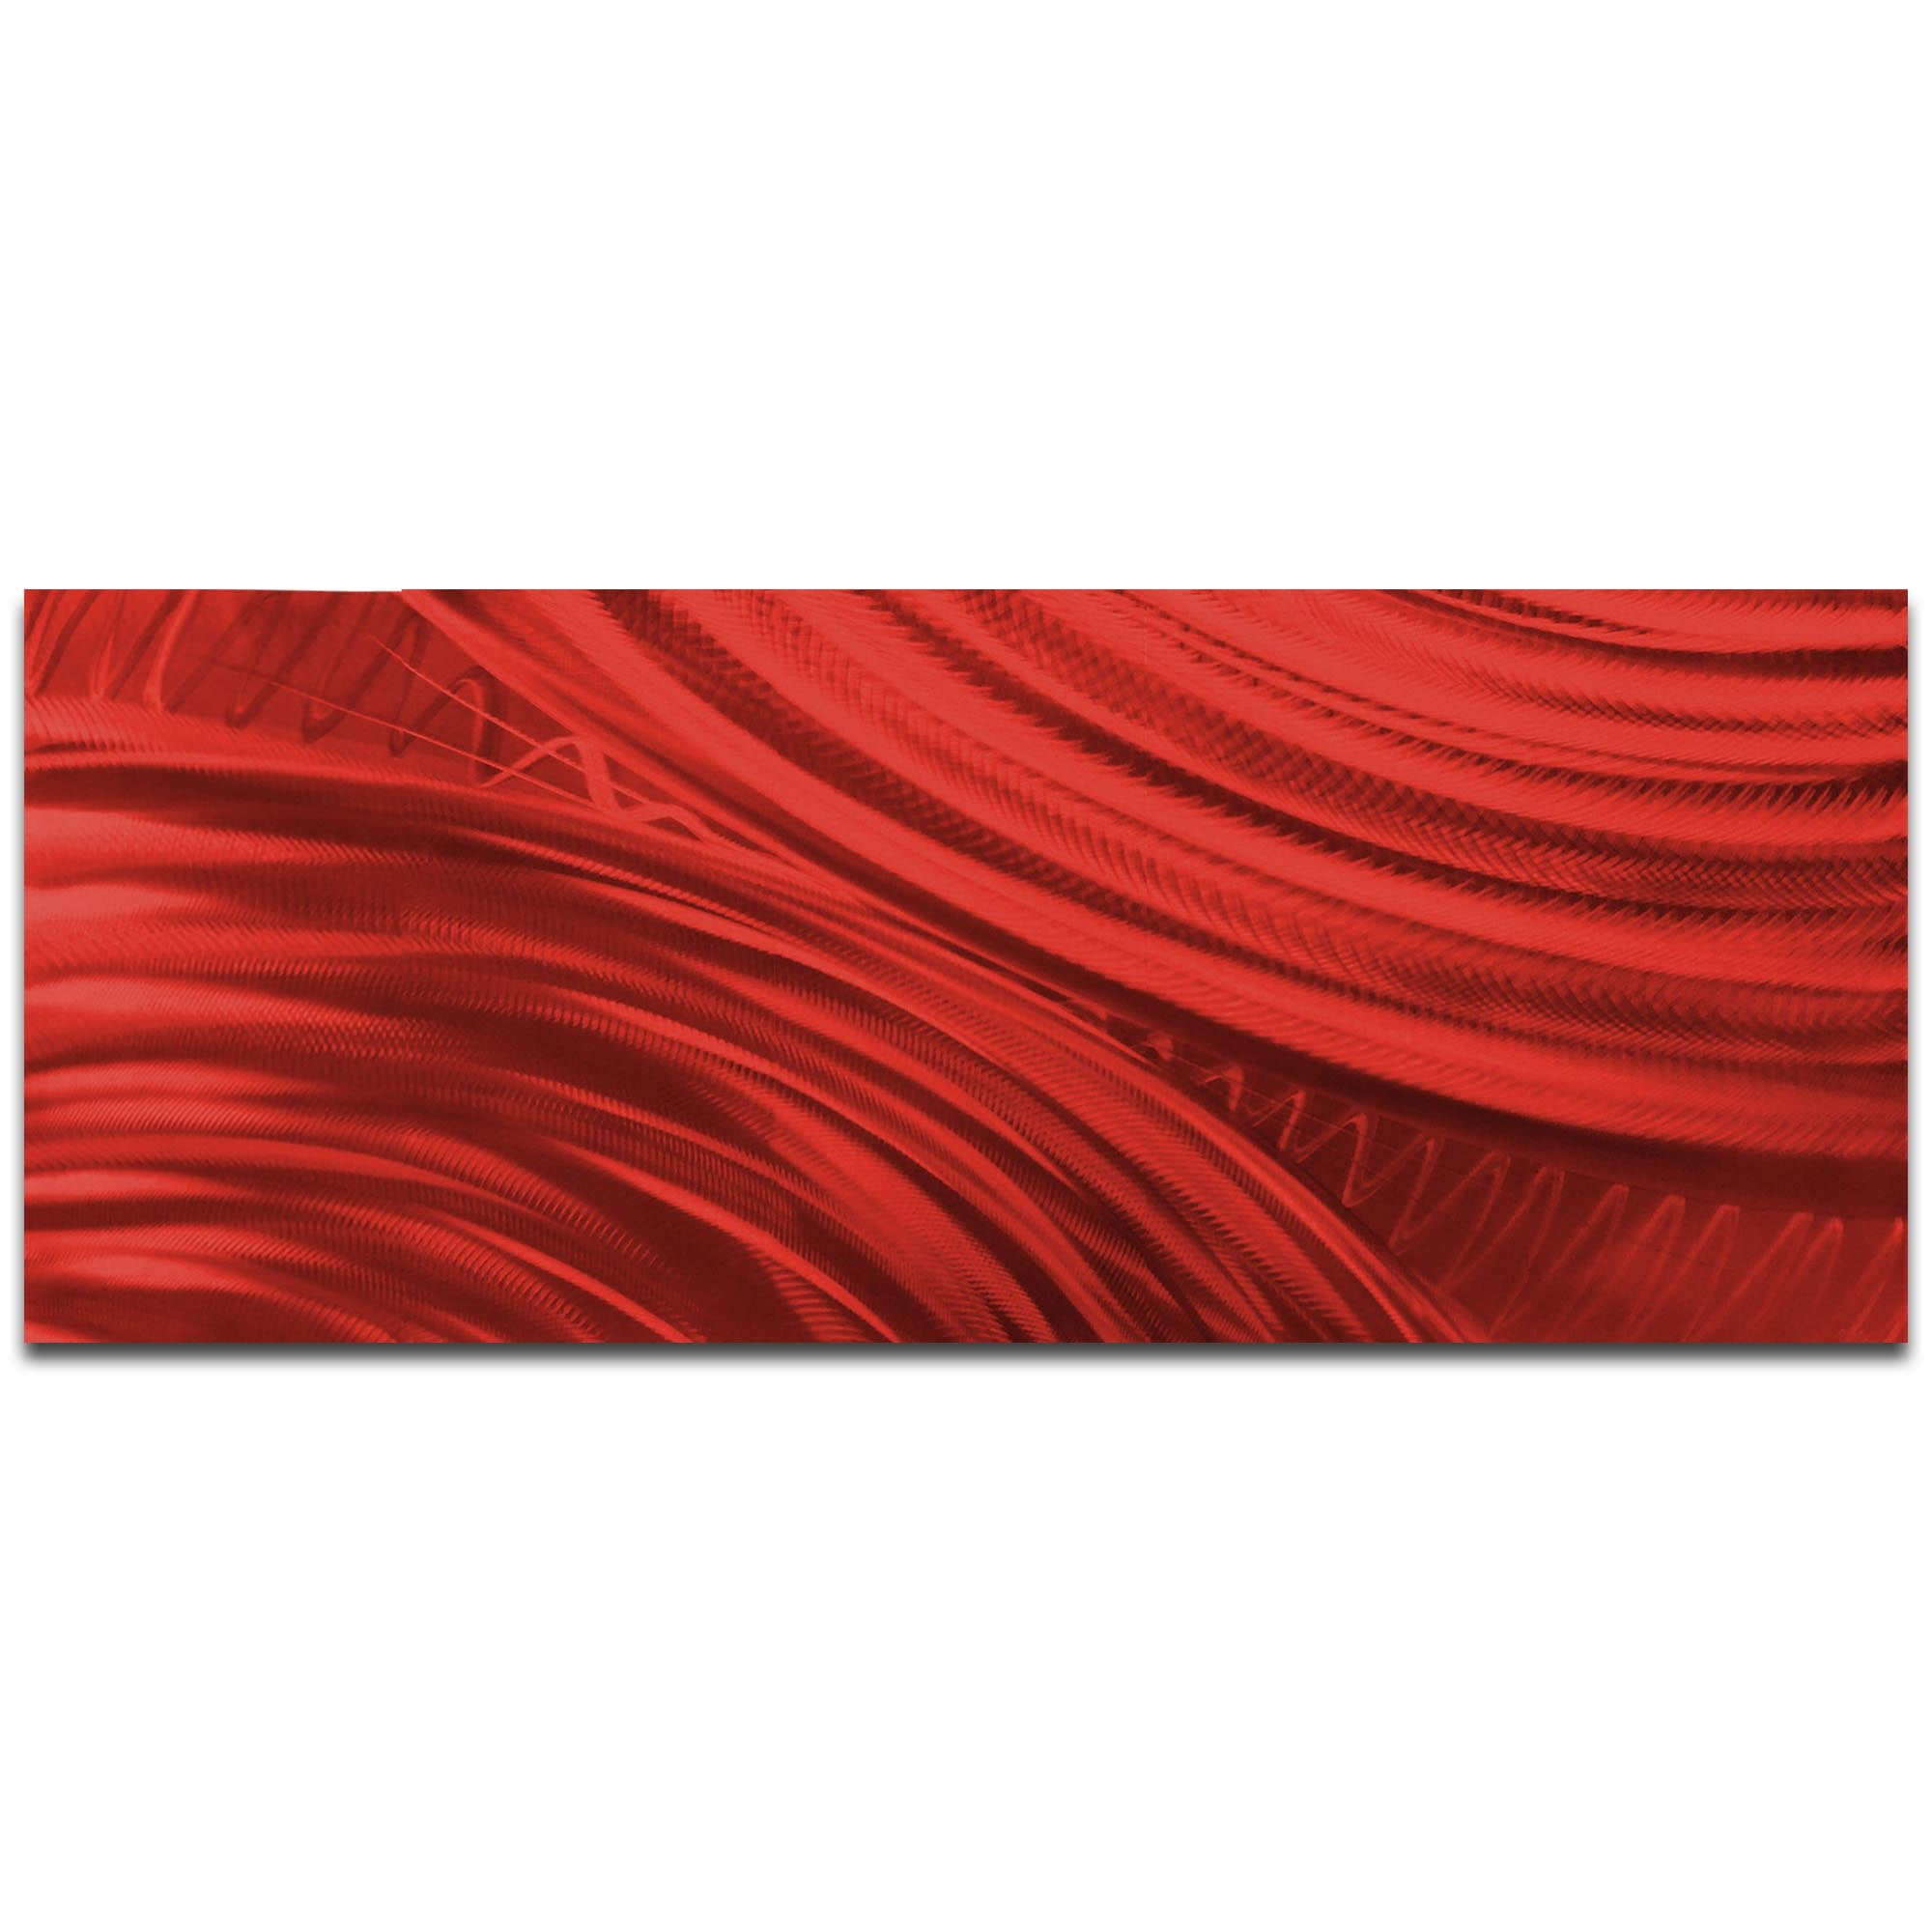 Moment of Impact Red by Helena Martin - Original Abstract Art on Ground and Painted Metal